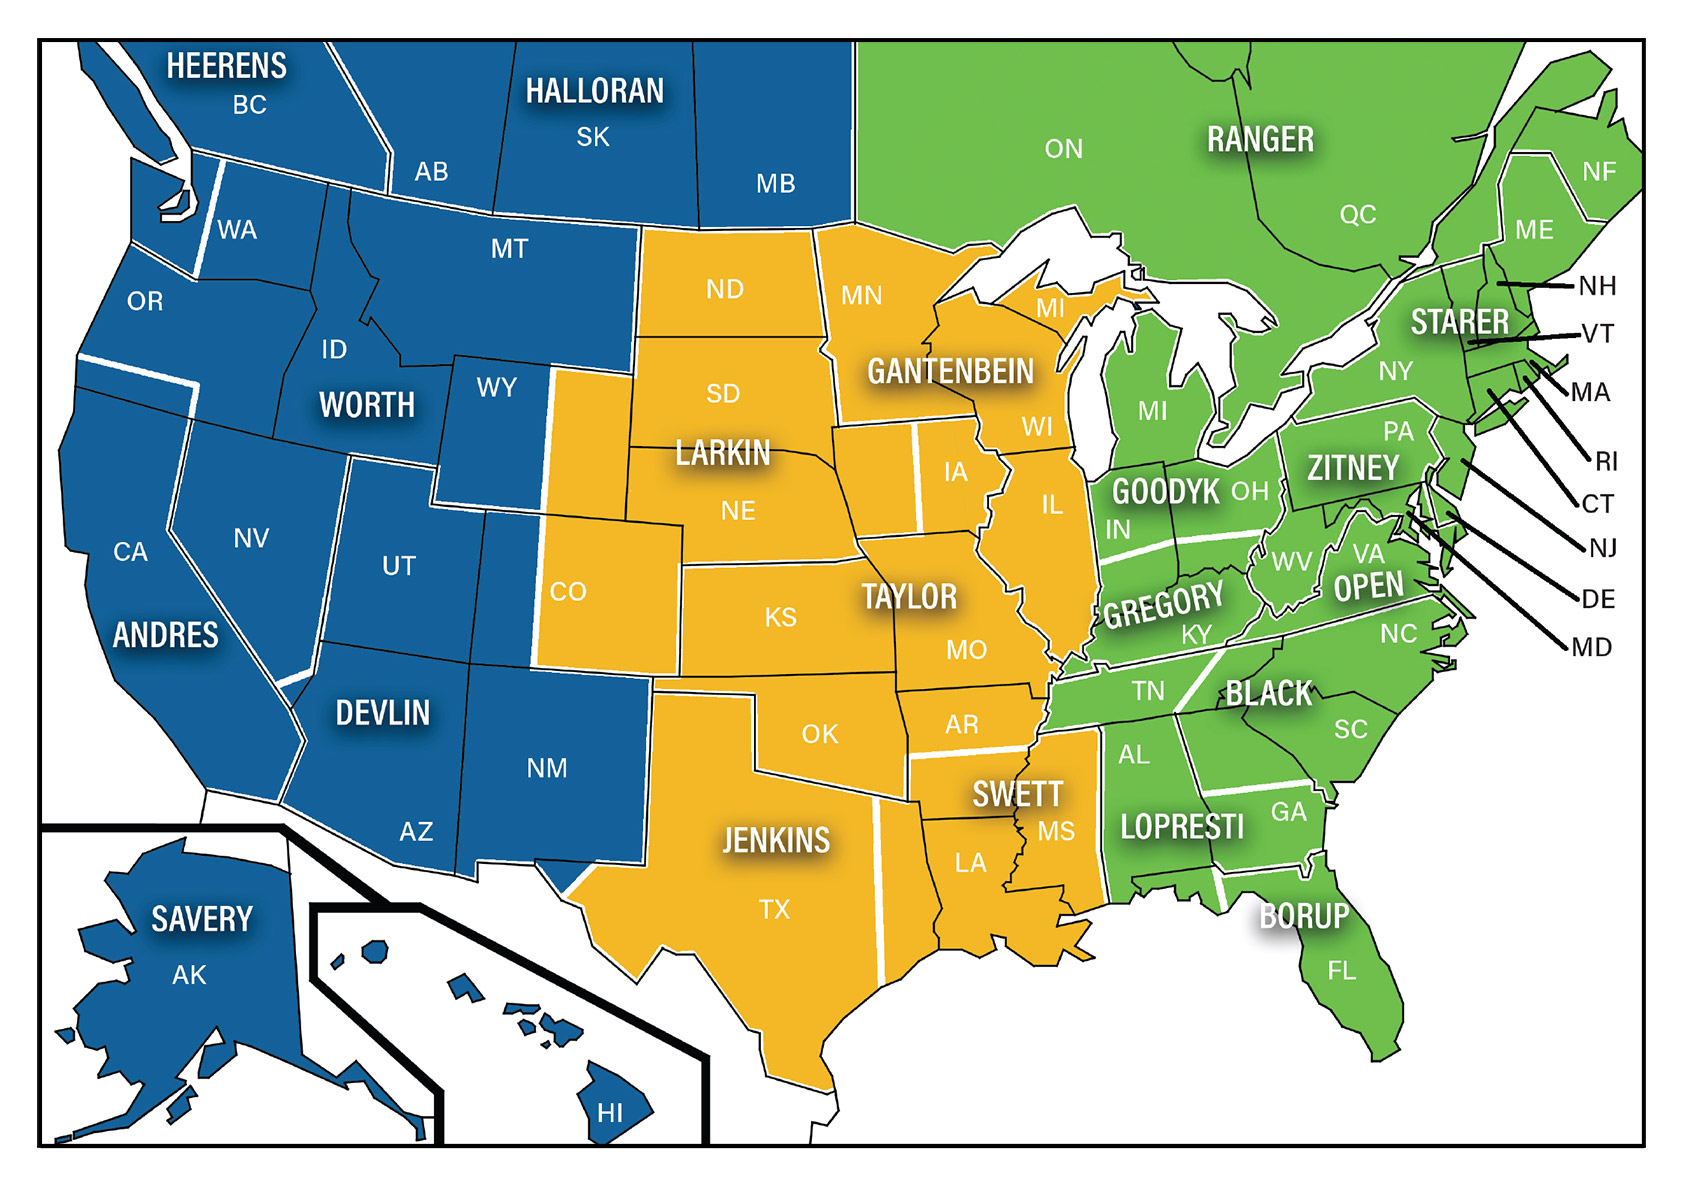 PPI Sales territory map